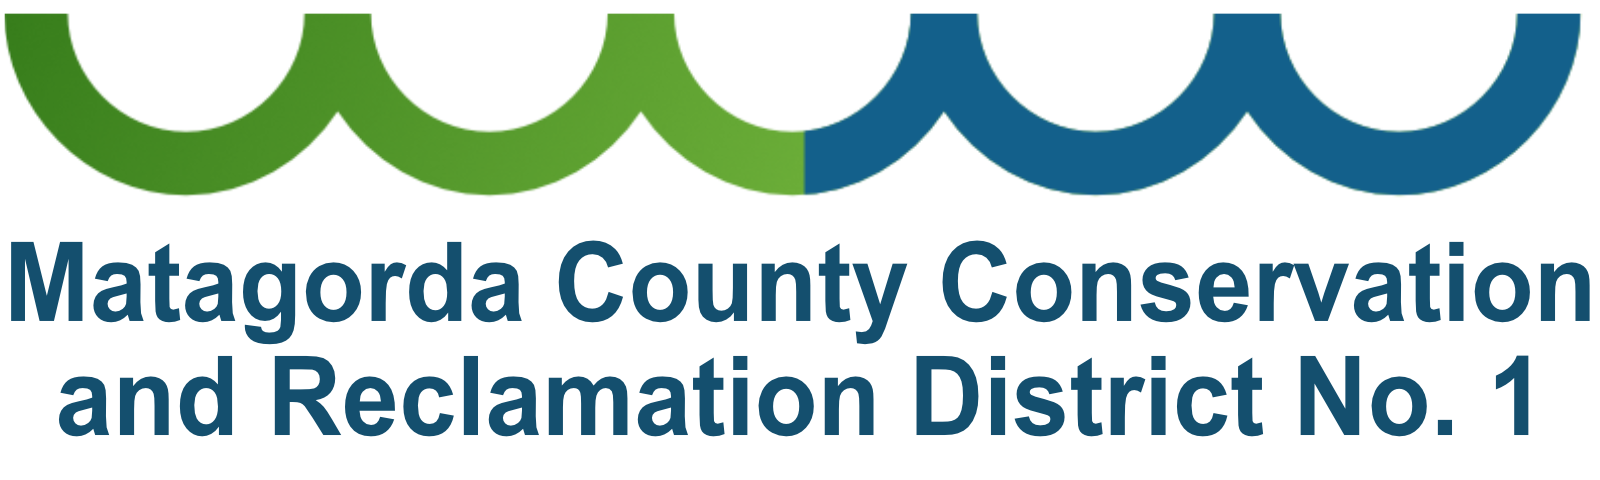 Matagorda County Conservation and Reclamation District No. One